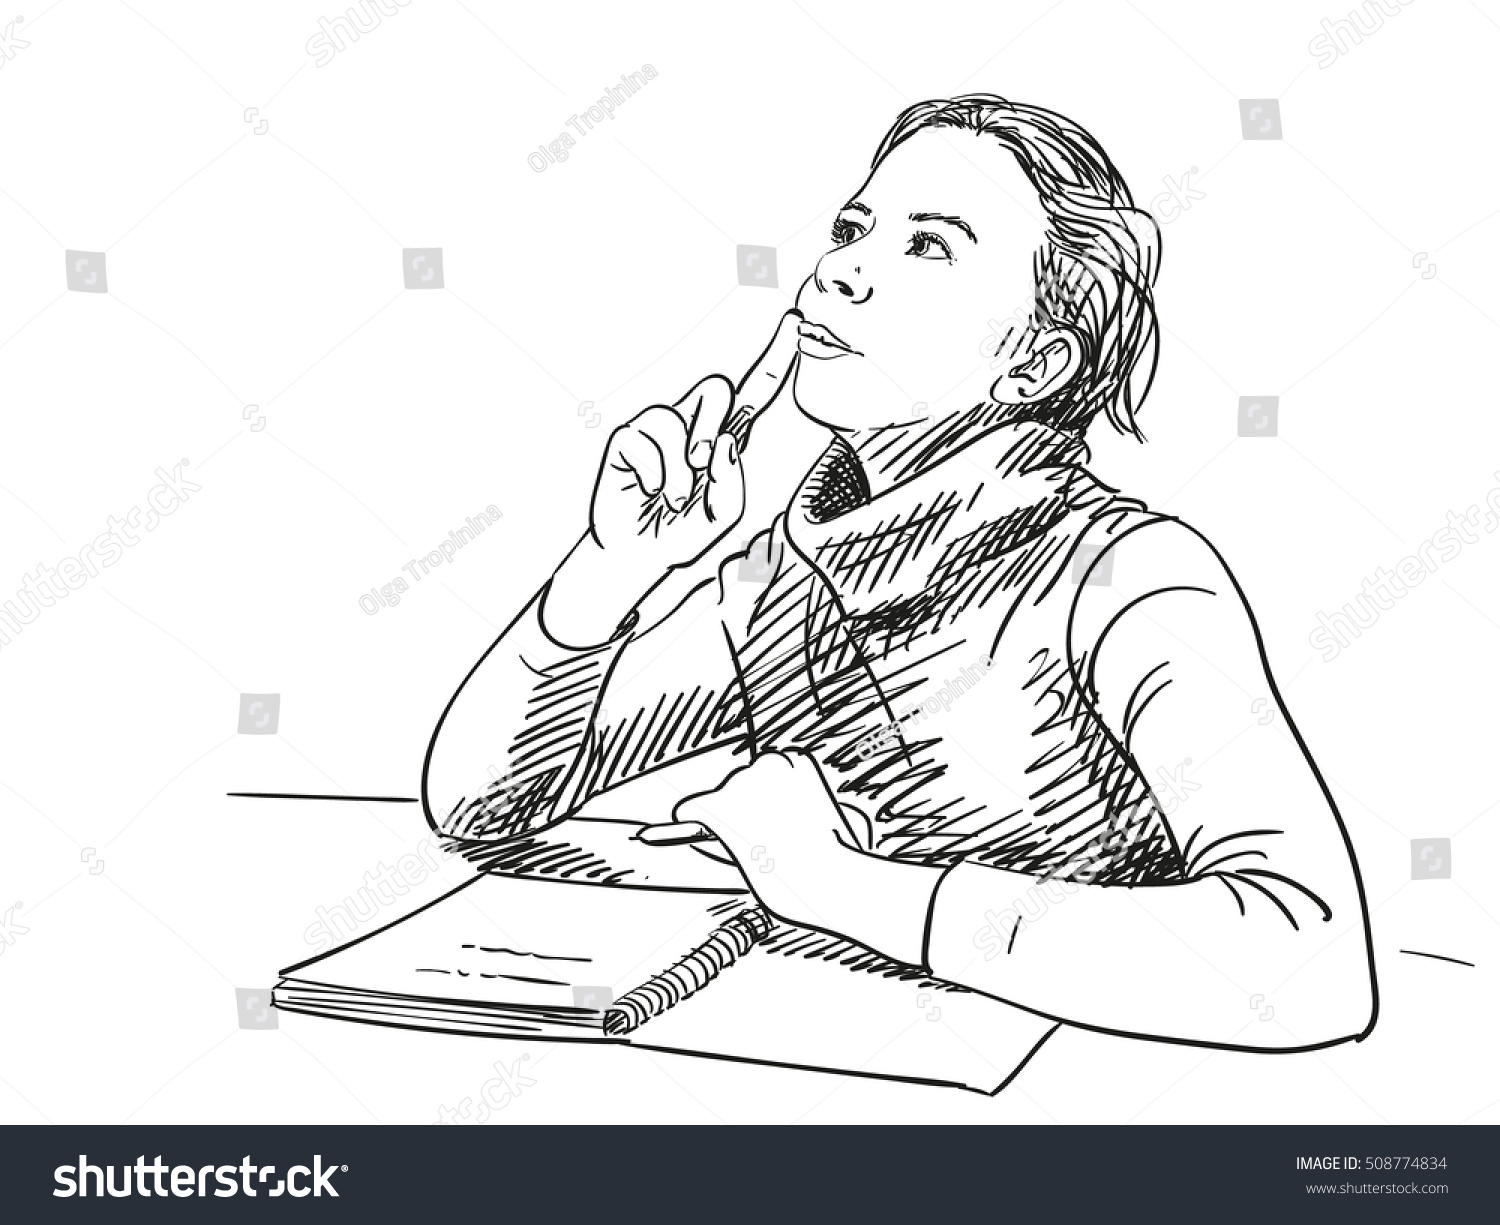 Notebook And Pen Sketch Stock Vector Art More Images Of: Sketch Girl Thinking Notebook On Table Stock Vector